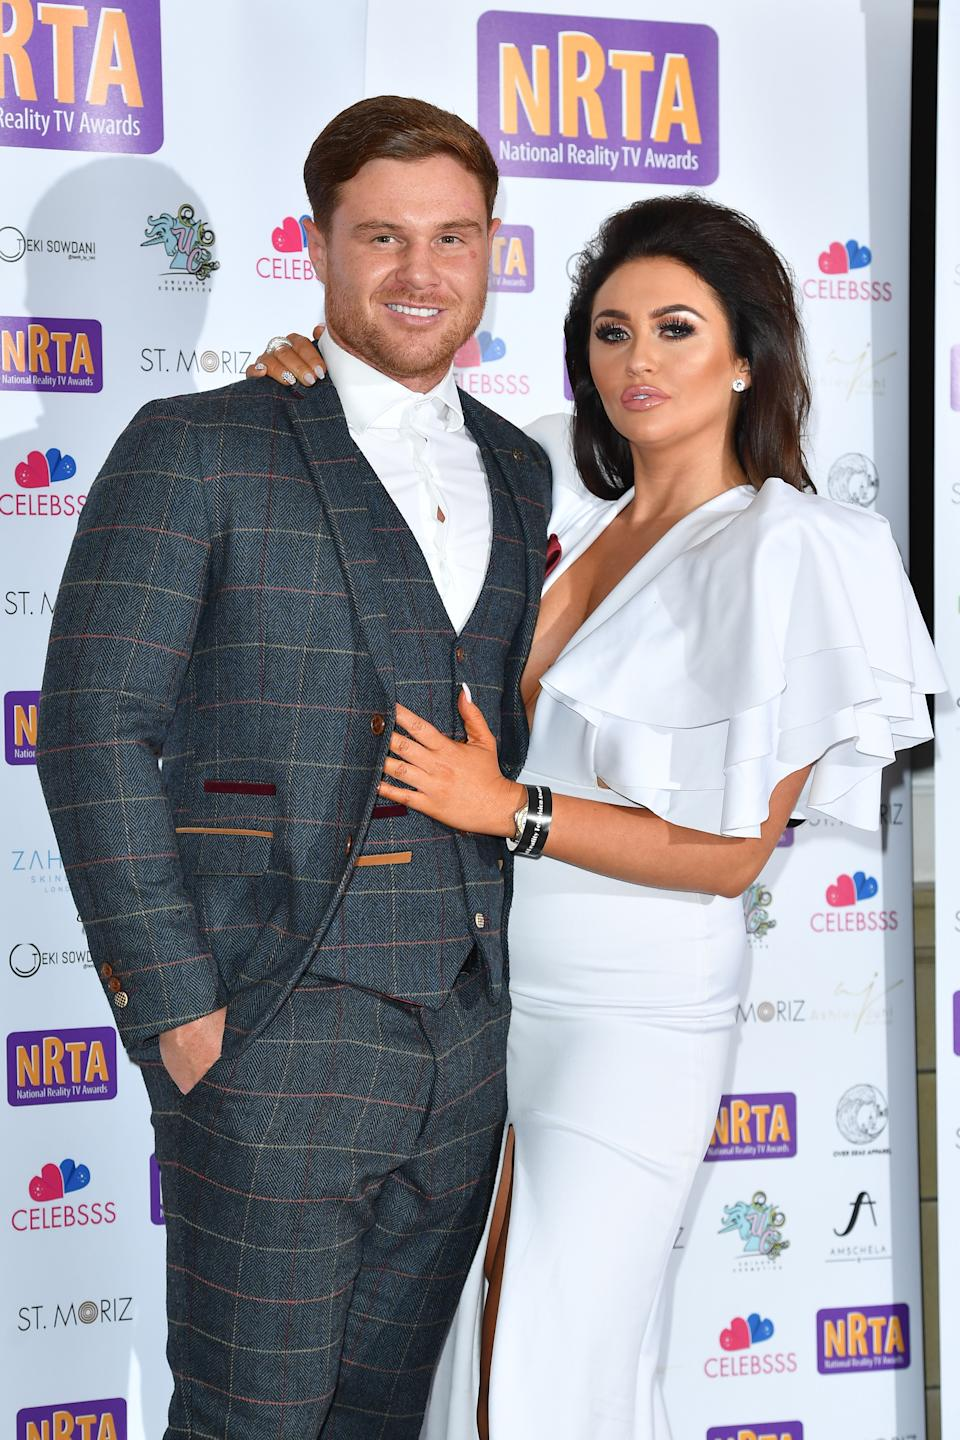 LONDON, ENGLAND - SEPTEMBER 25:  (L-R) Matthew Sarsfield and Charlotte Dawson attend the National Reality TV Awards held at Porchester Hall on September 25, 2018 in London, England.  (Photo by Jeff Spicer/Getty Images)